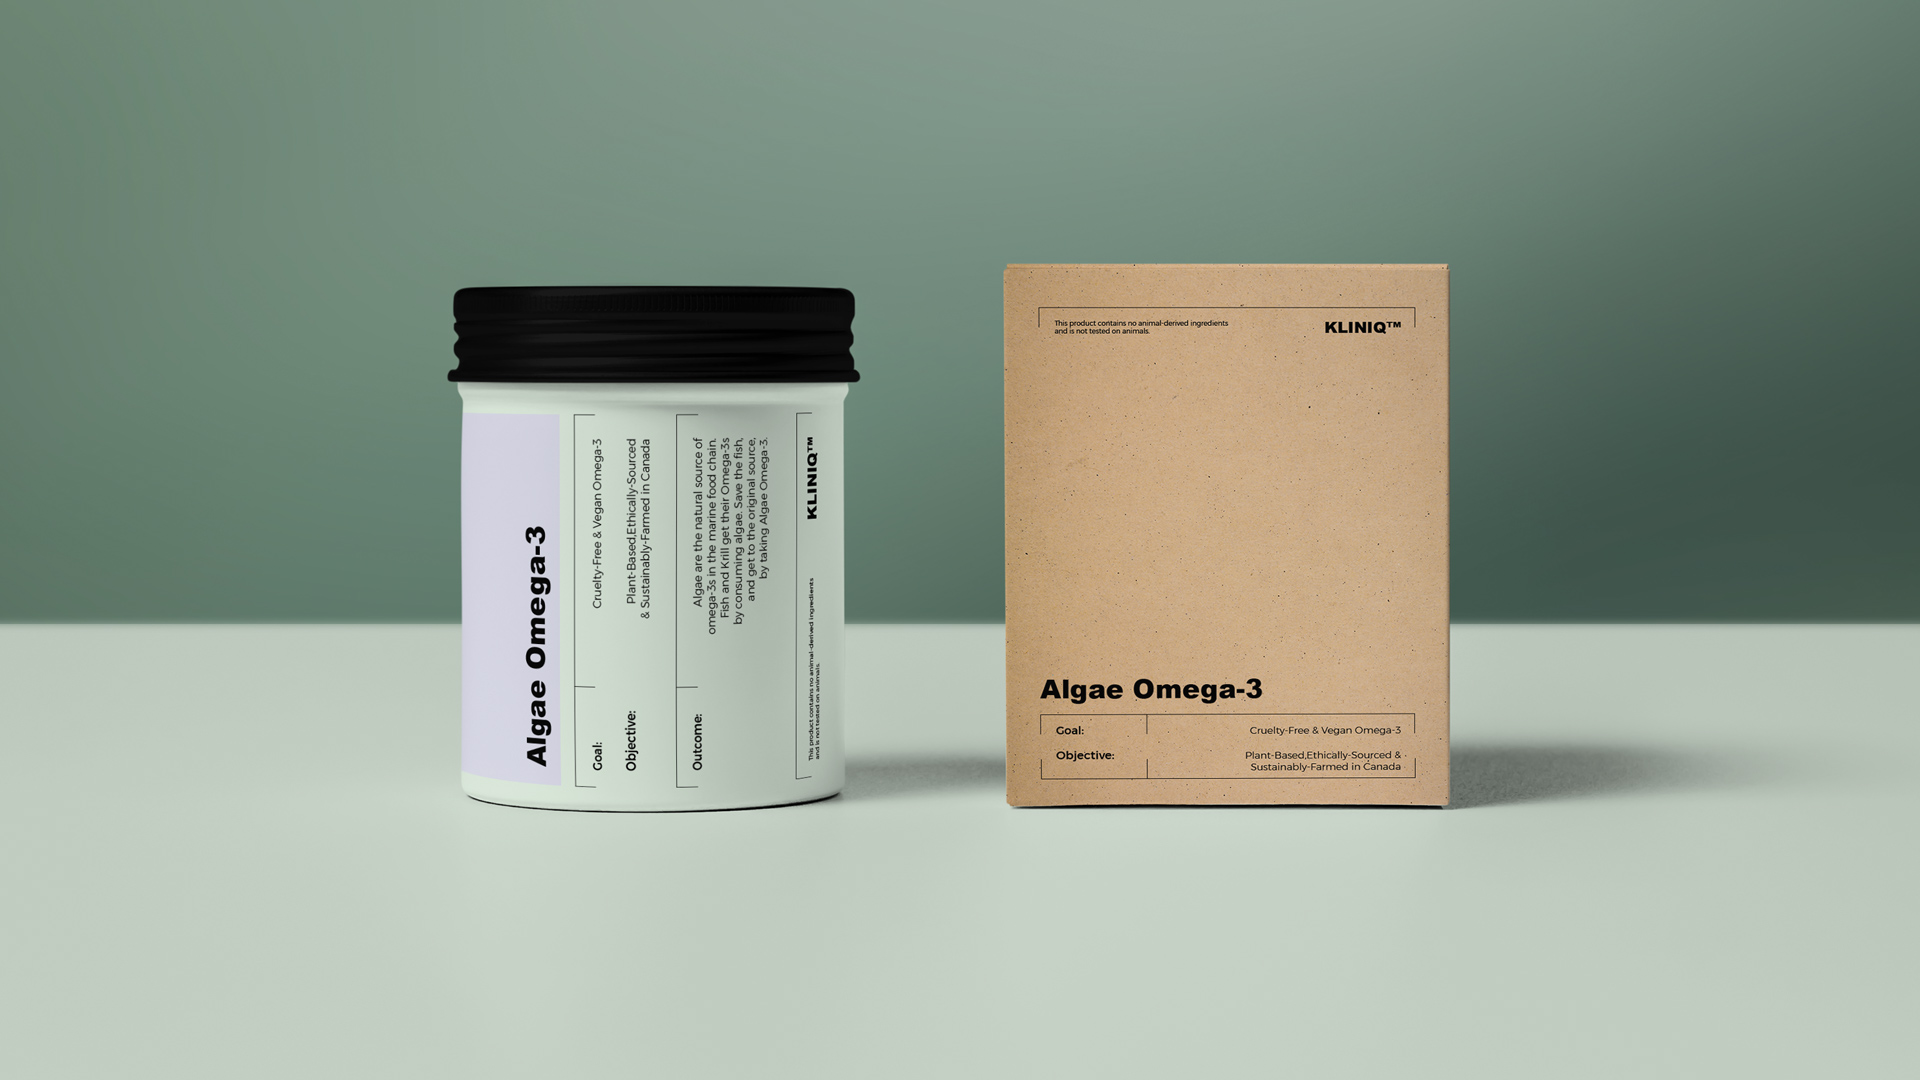 Identity and Packaging for Kliniq a Range of High-Quality Health Care Products on Algae Basis